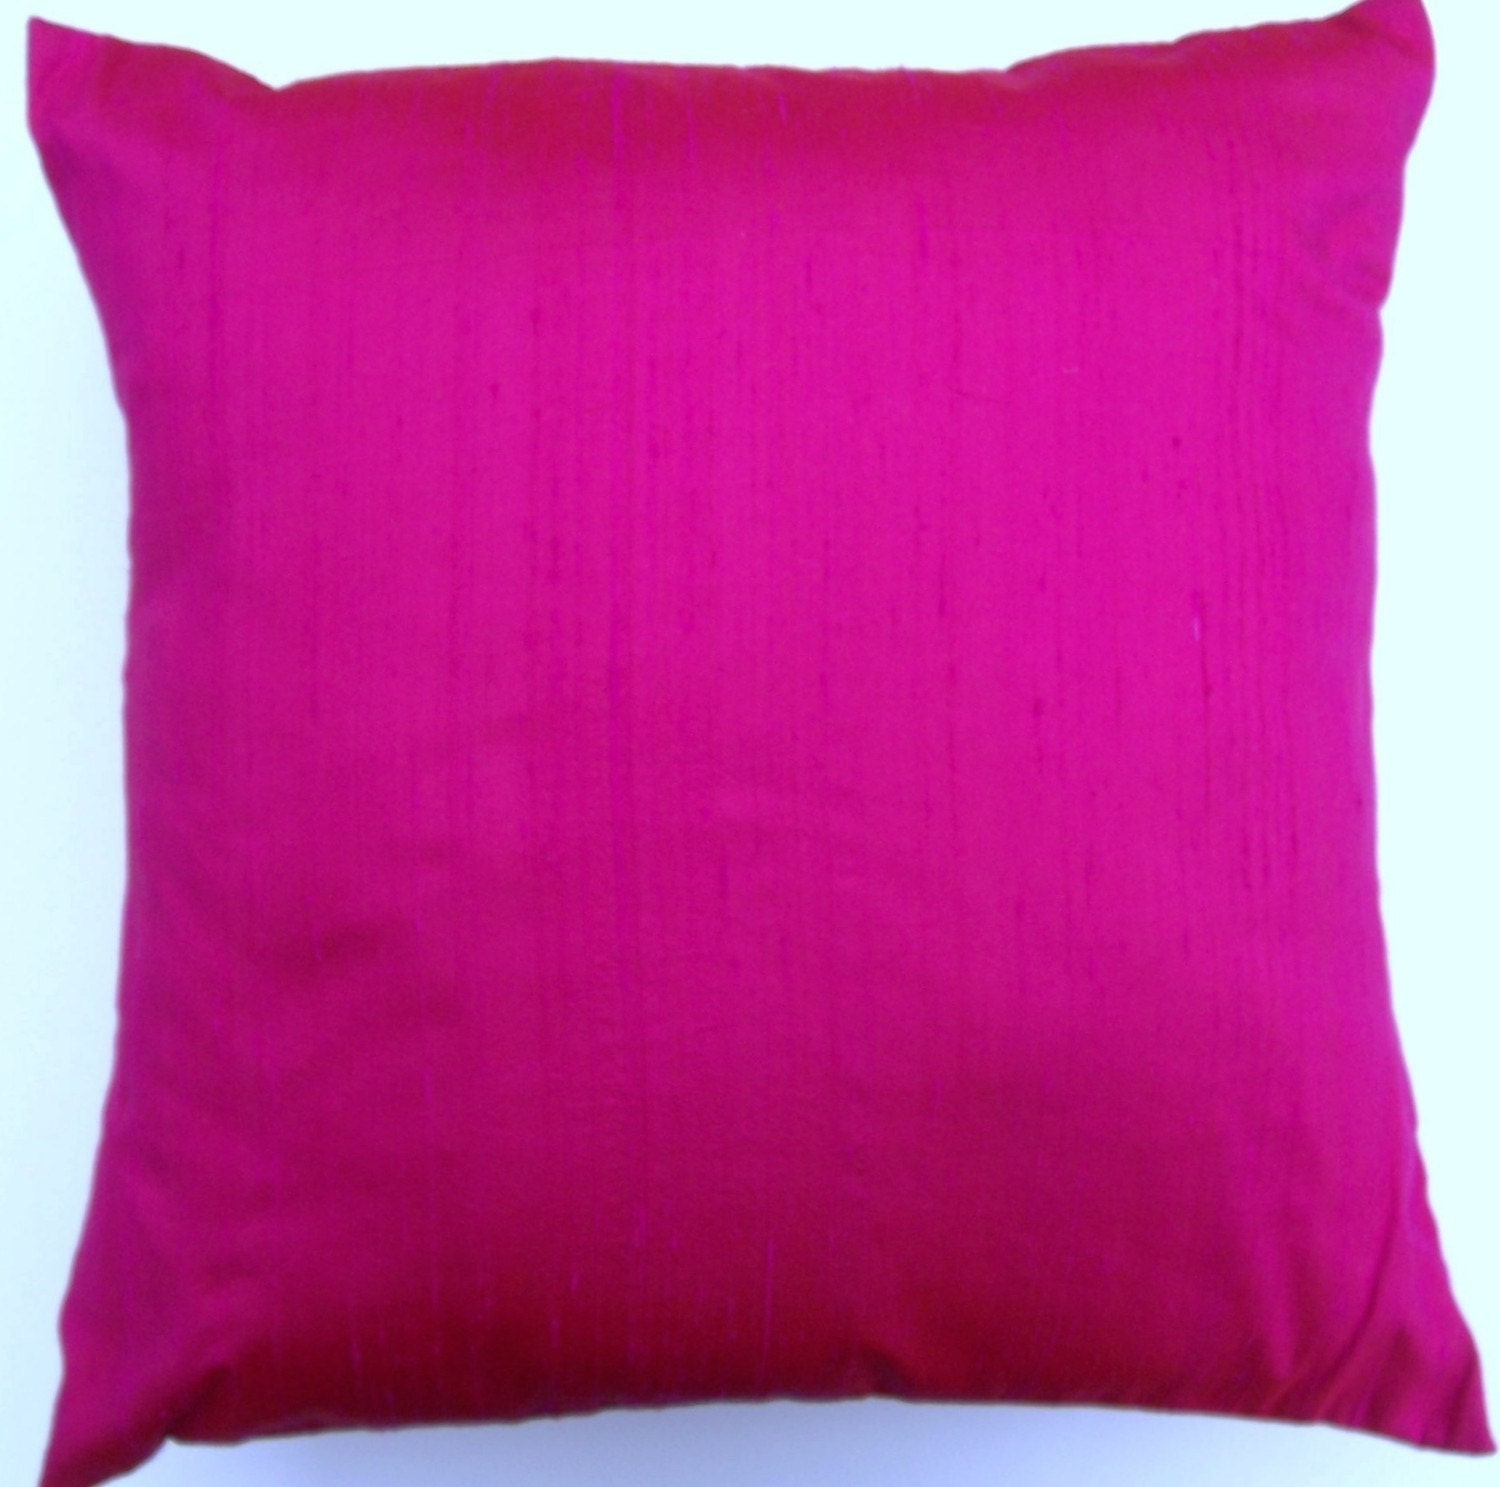 Pink Throw Pillows For Couch : Hot Pink Pillow Cover Hot Pink Throw Pillow Cushion Cover